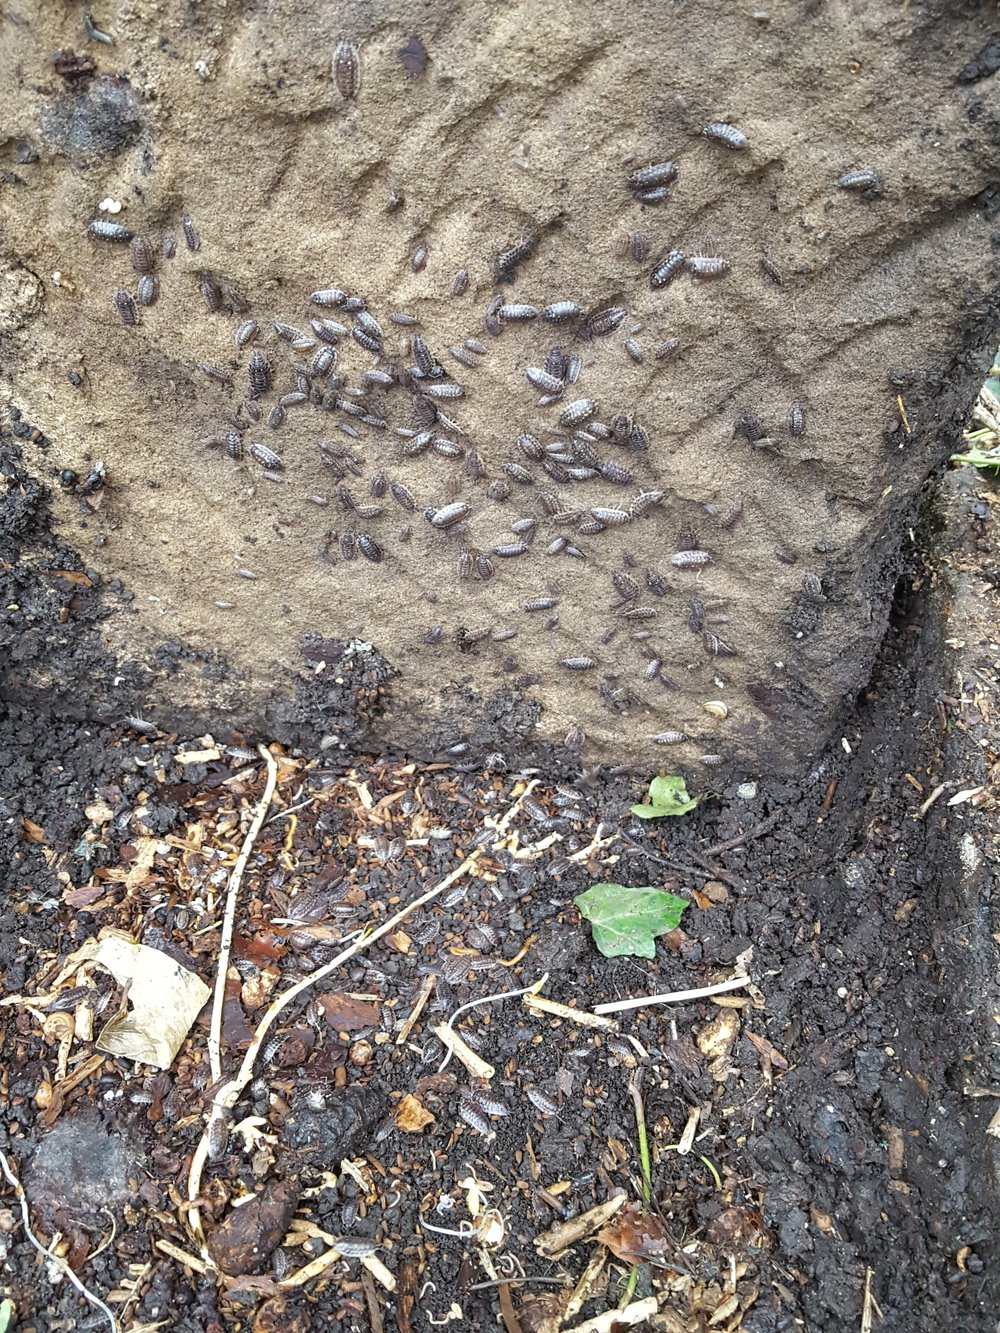 A woodlouse convention